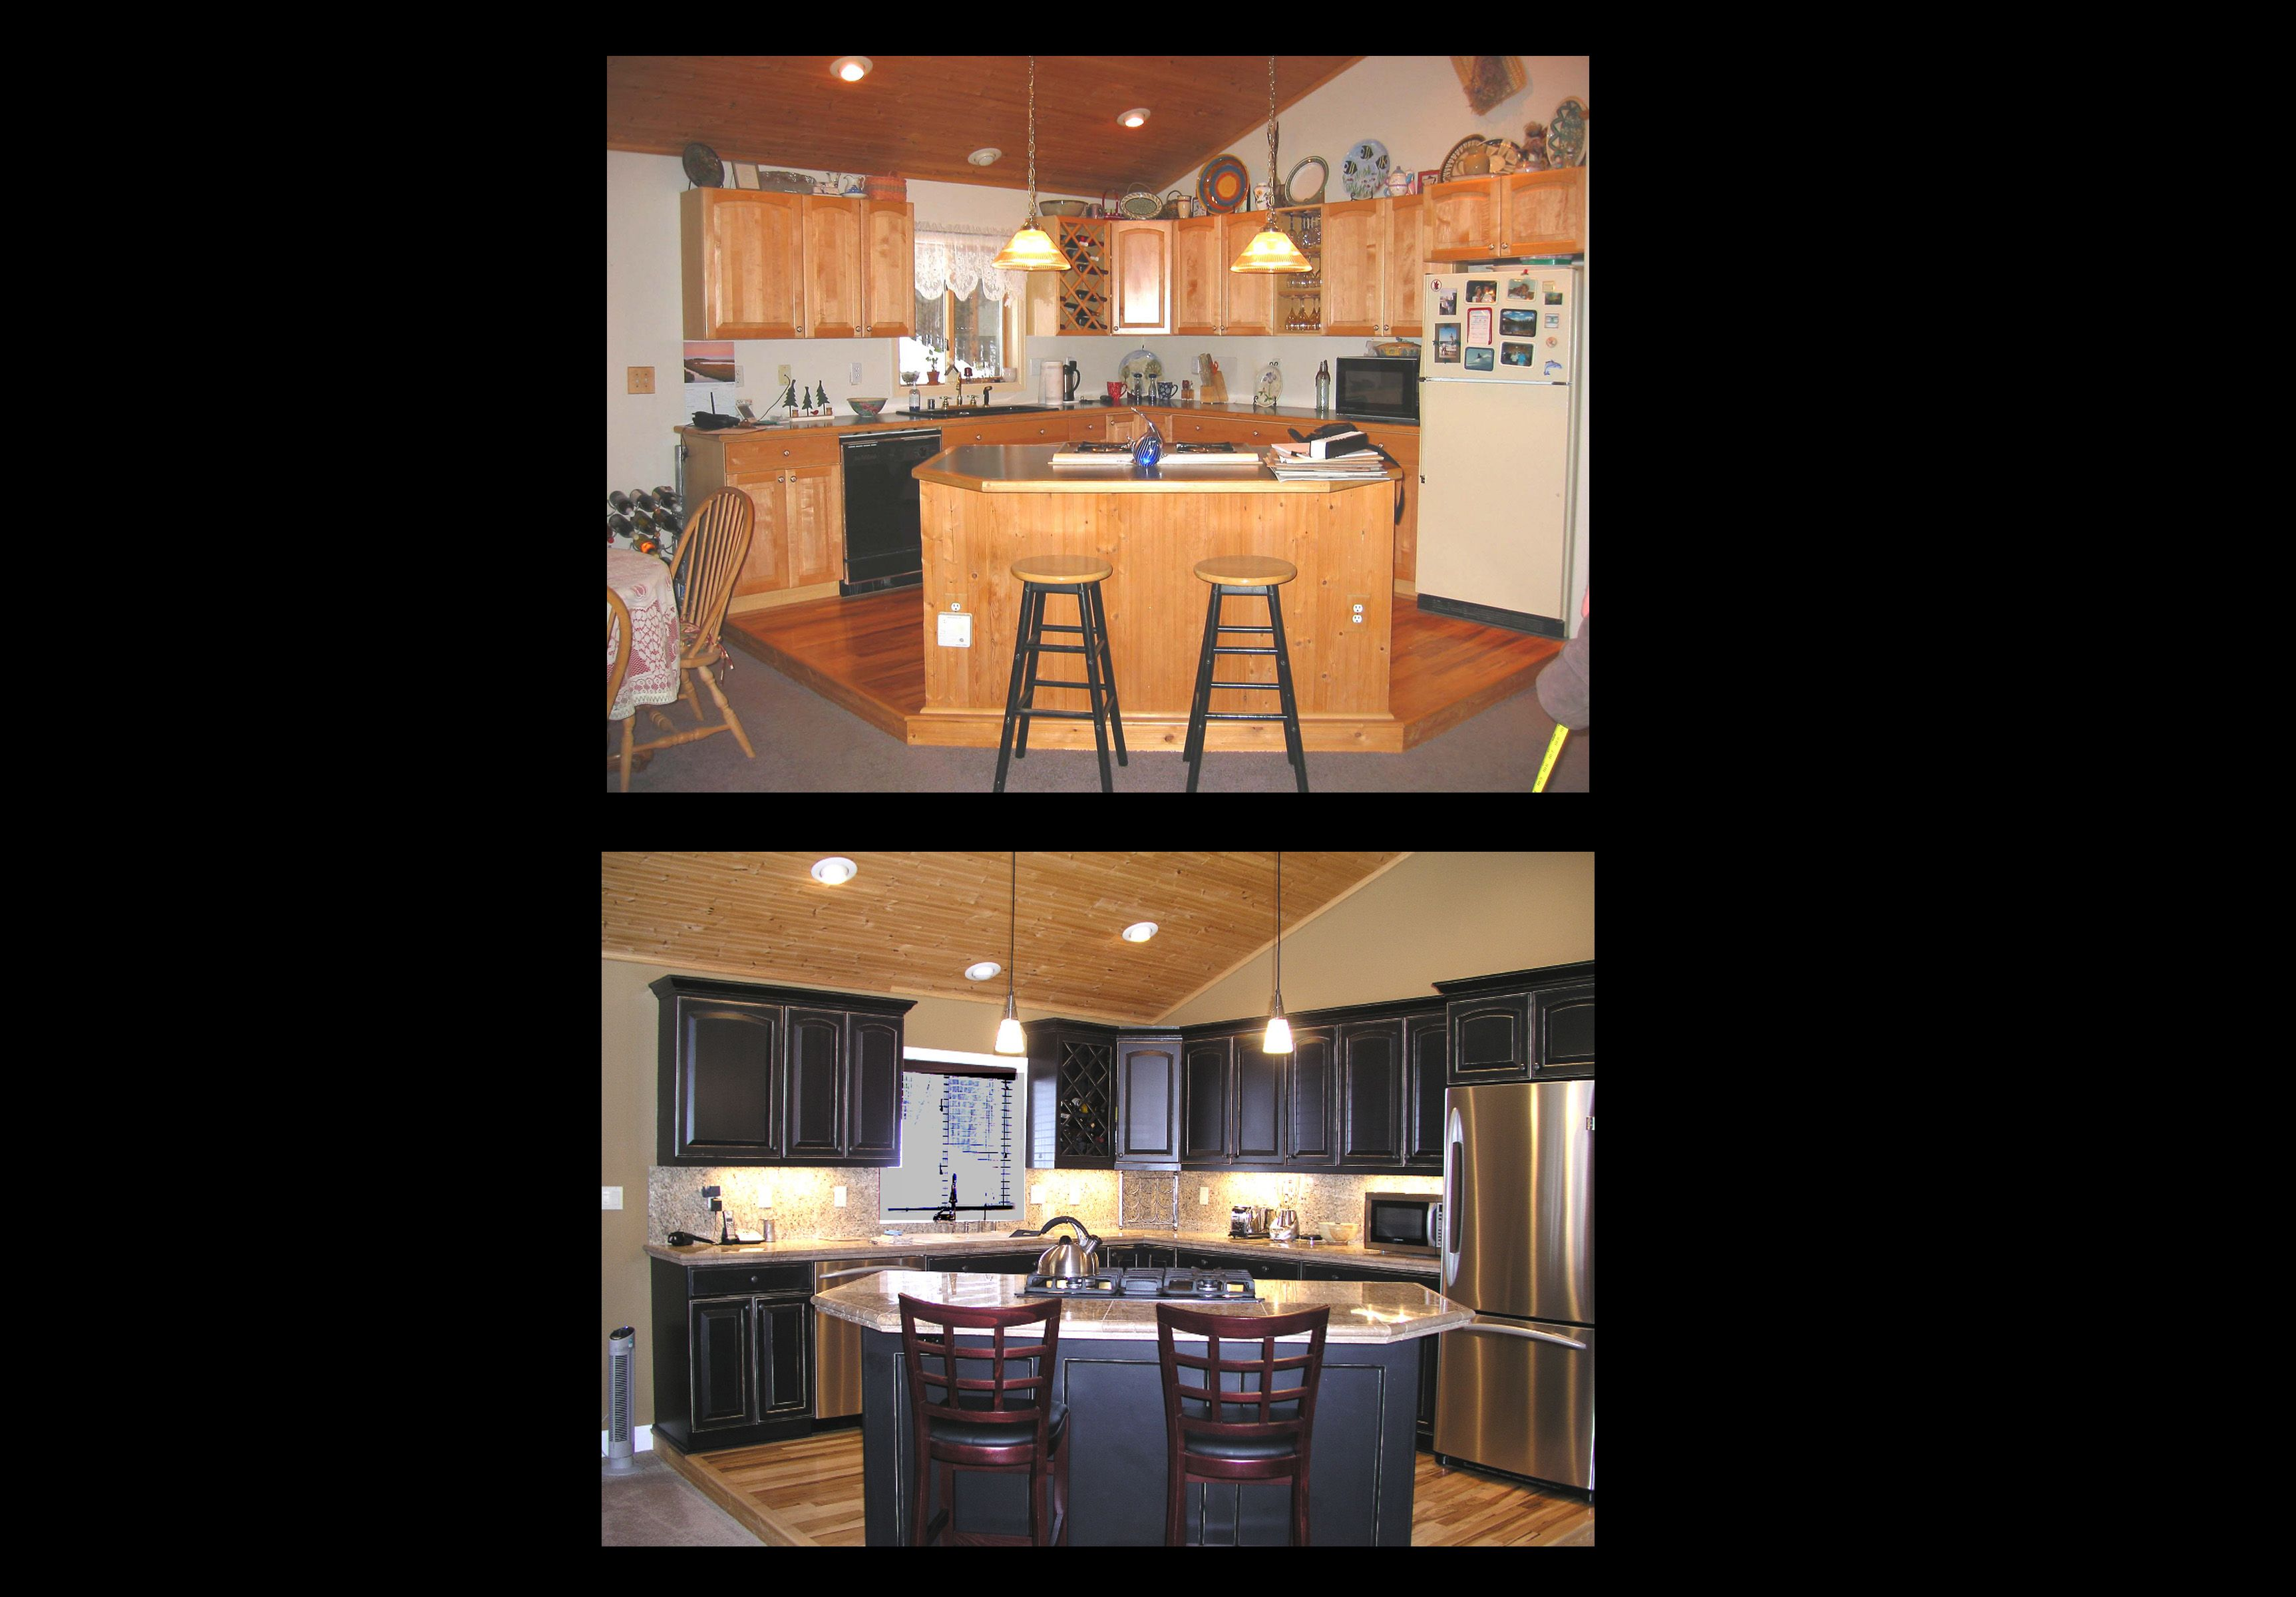 distressed painted cabinets & molding (plus appliances ...